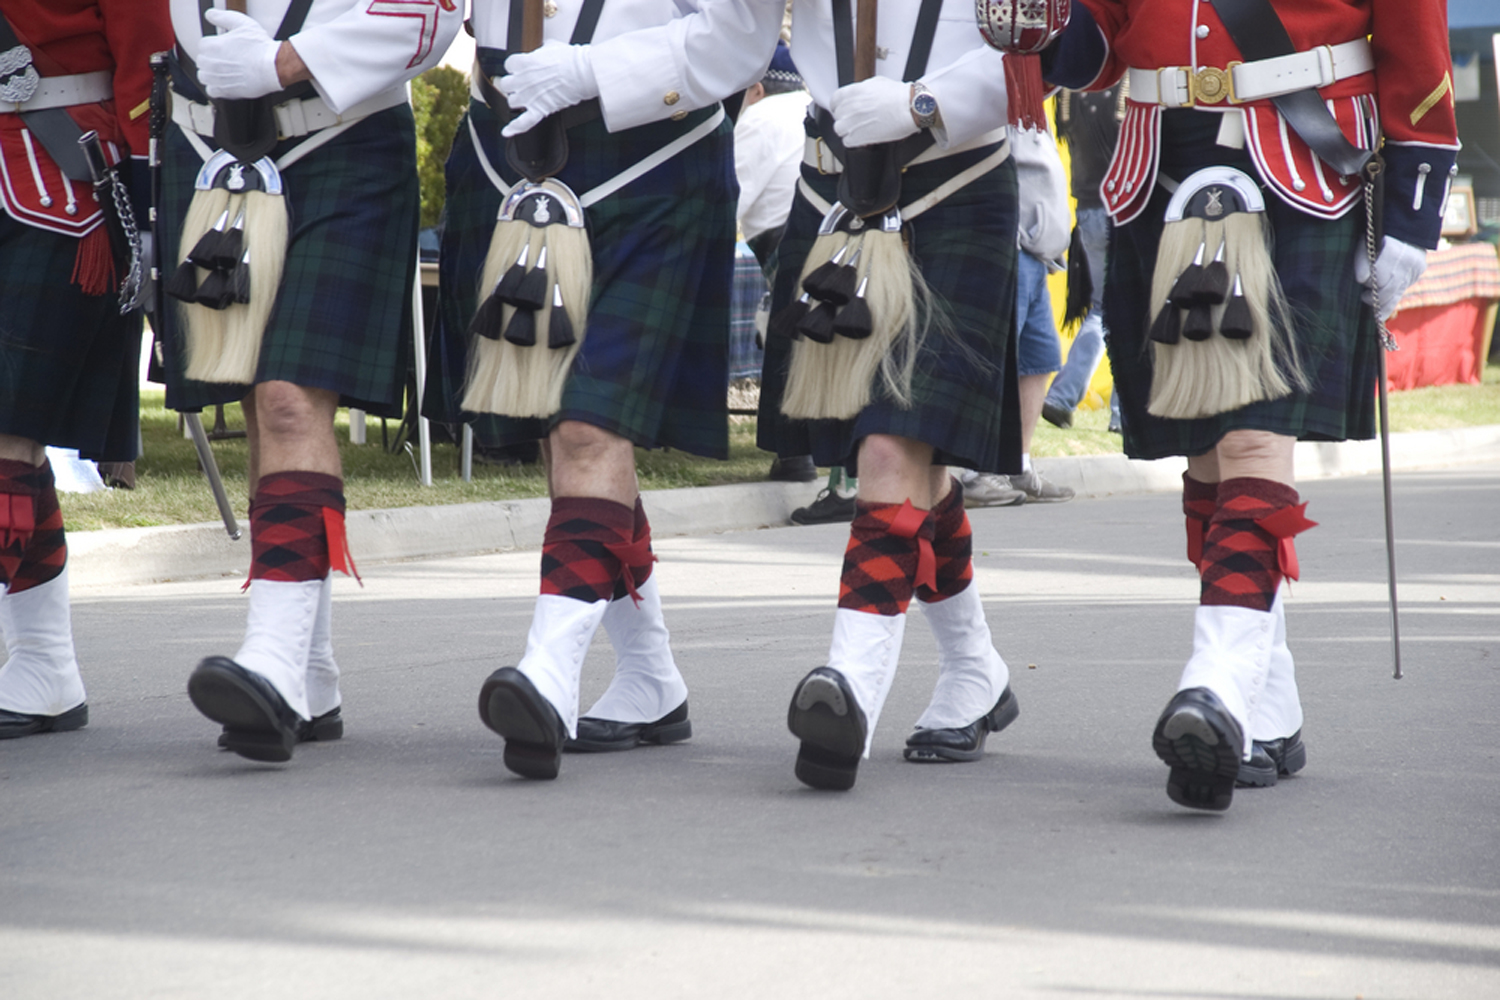 JAM Brothers Embroidery Uniforms Embroidery Kilt Sporrans Sticks Drum Pipe Gauntlets Sashes Glenagarry Balmoral Chevrons Aiguilettes Badges Scotlans Scottish Highland Band